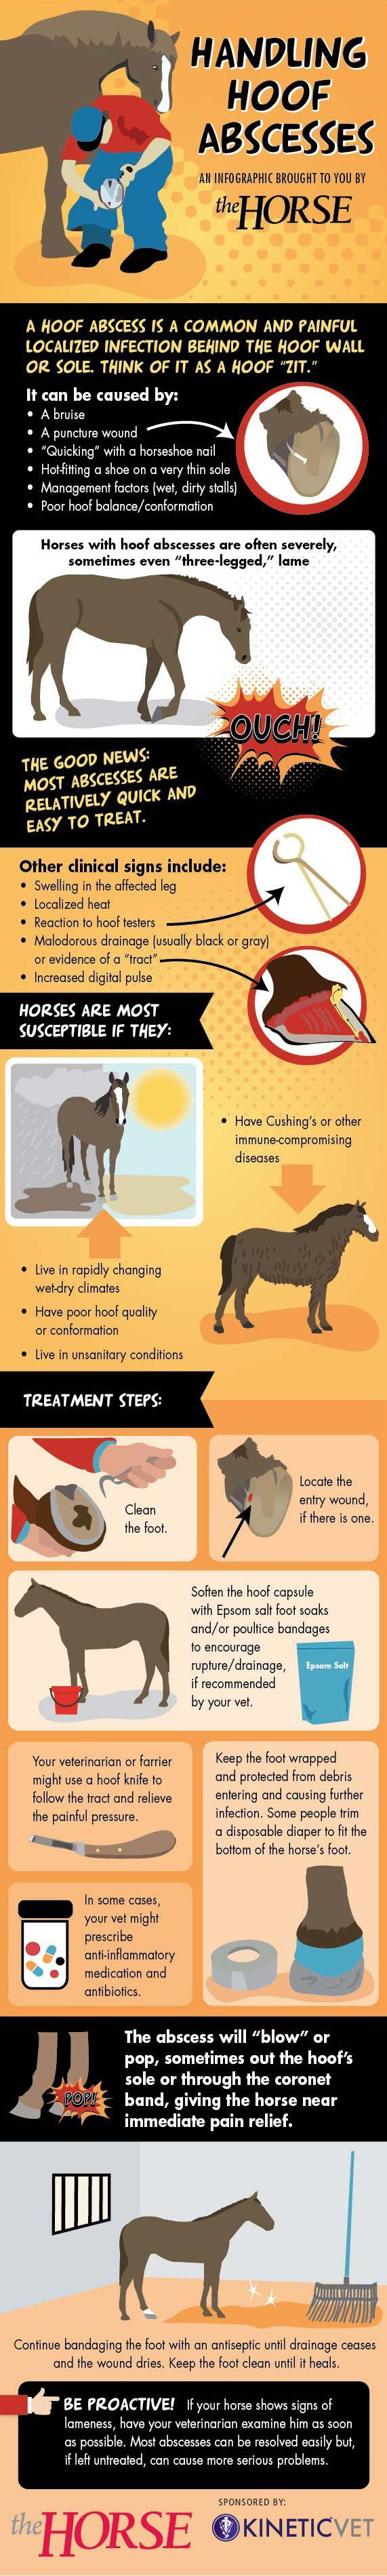 [INFOGRAPHIC] Handling Hoof Abscesses - Hoof abscesses are a common cause of…